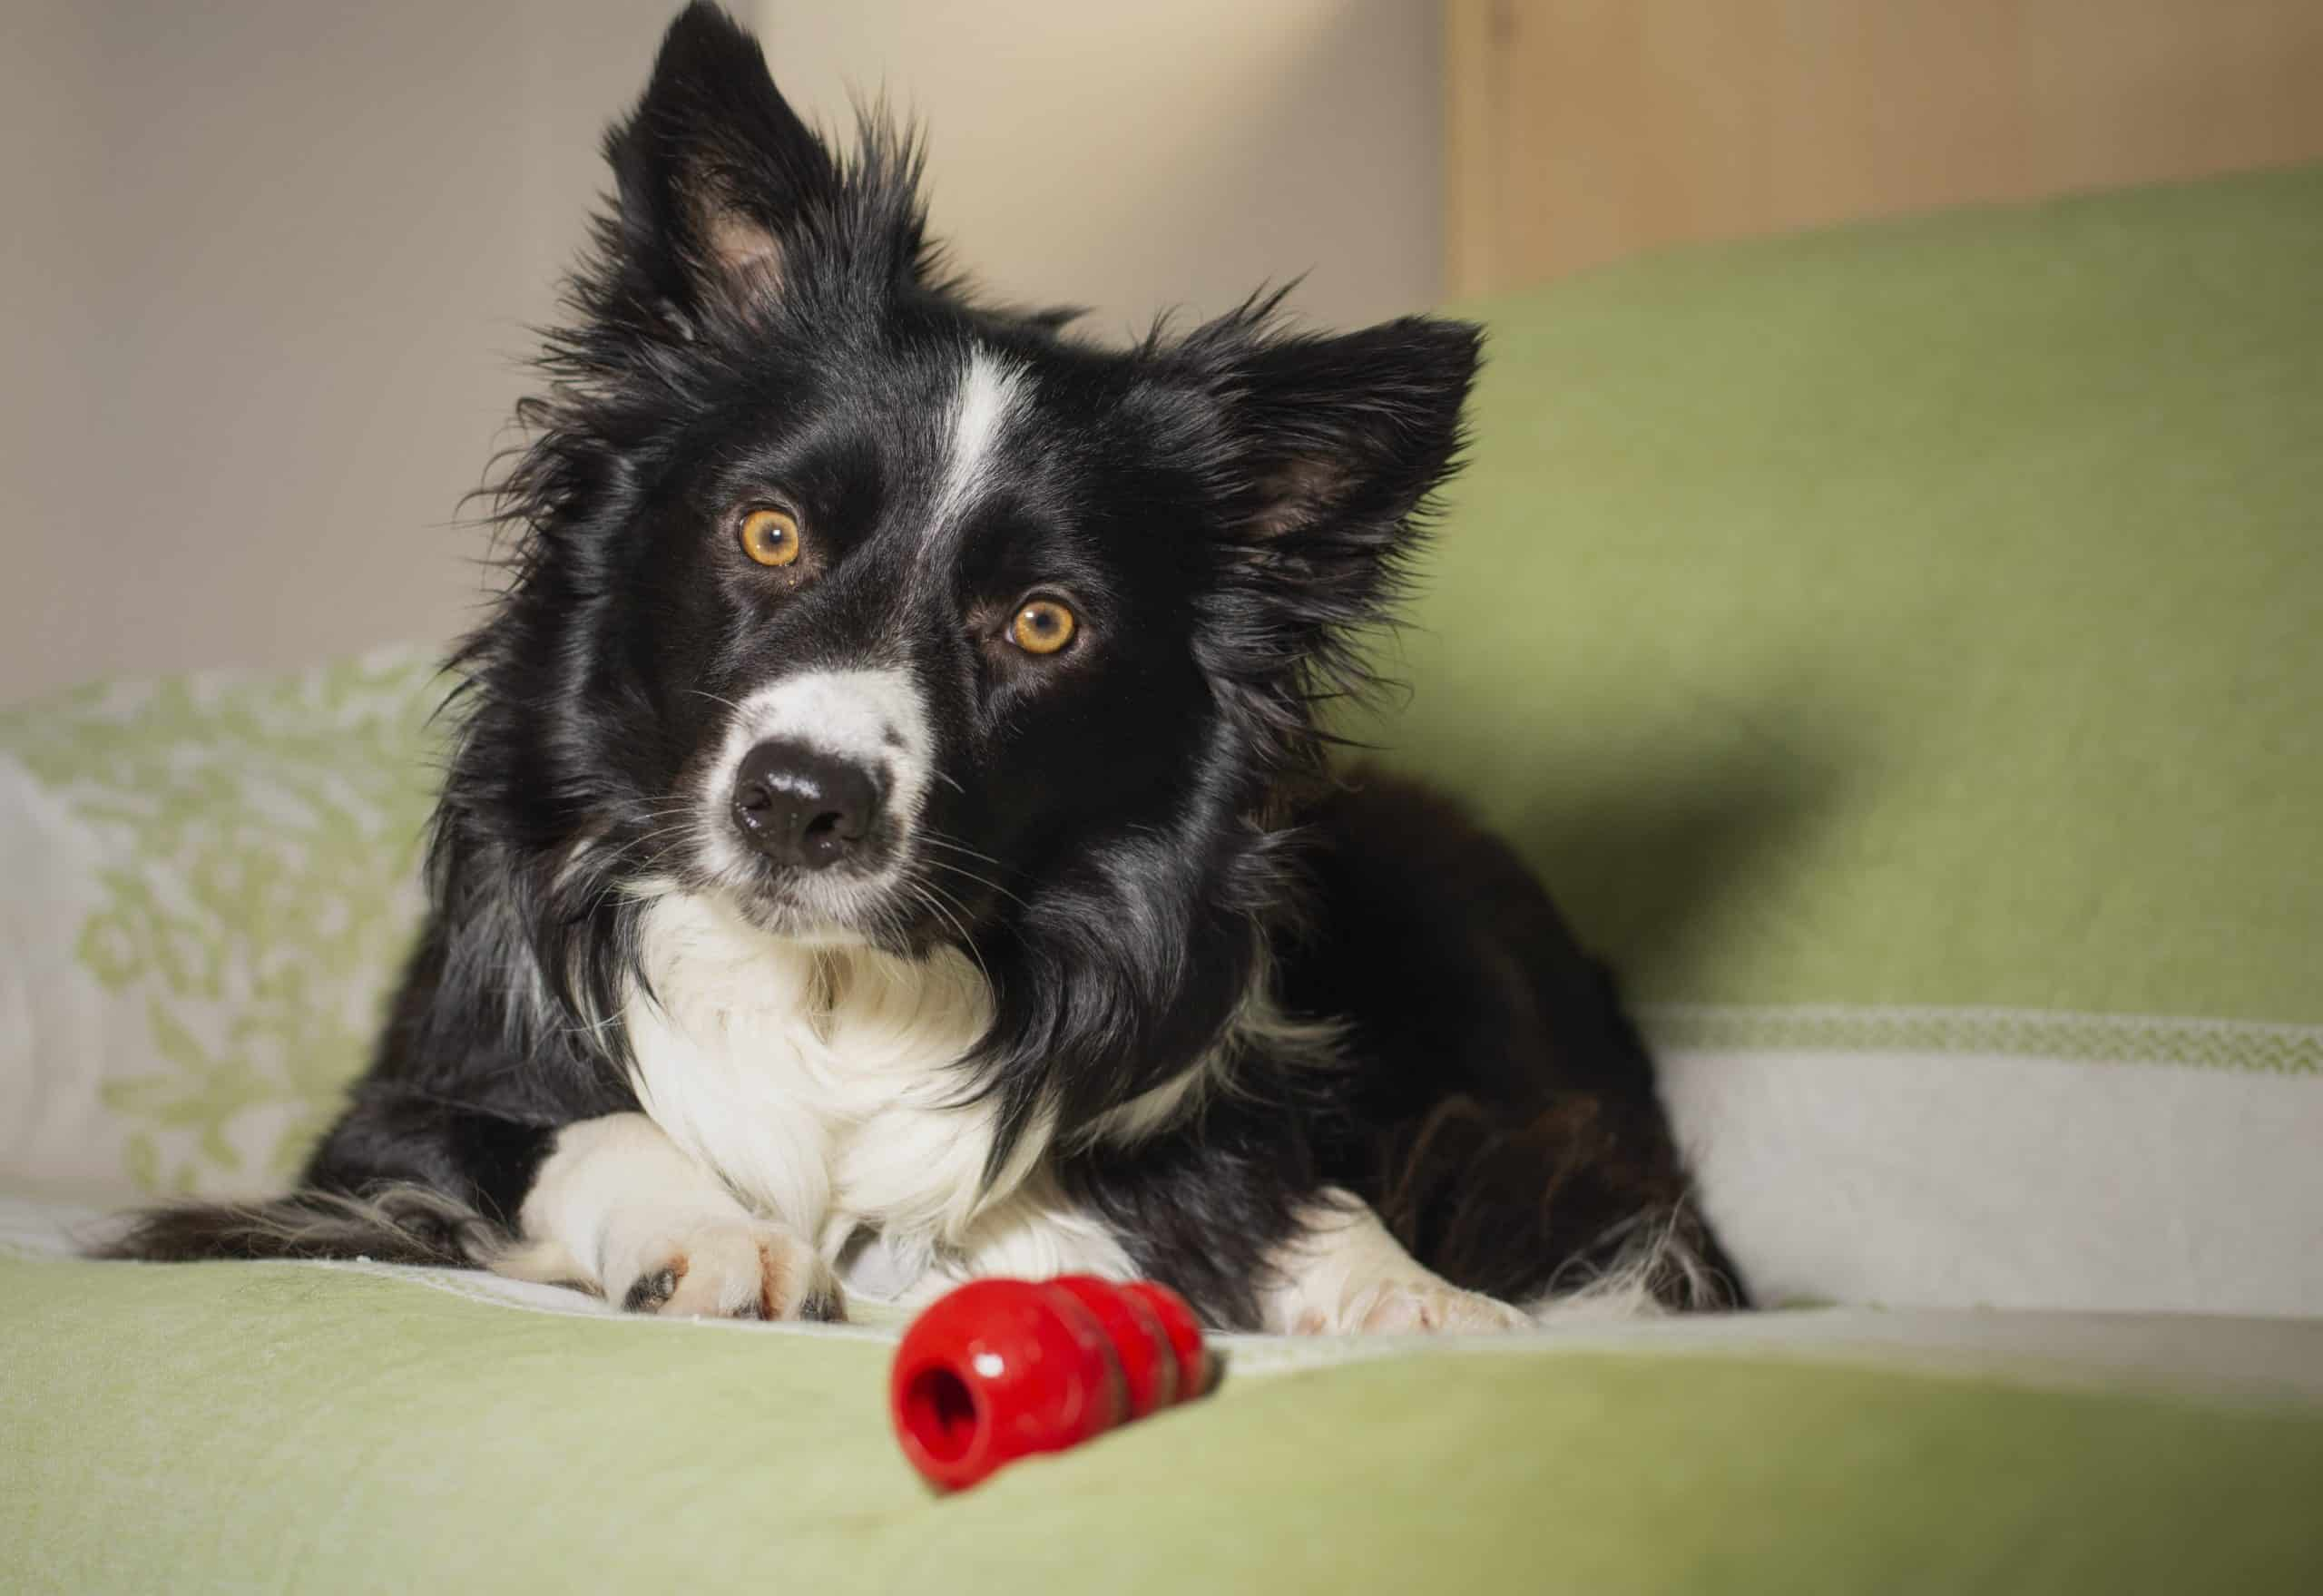 Border Collie puppy plays with Kong food toy. Food dispensing toys like Kongs help keep puppies occupied and encourage their natural scavenging abilities.